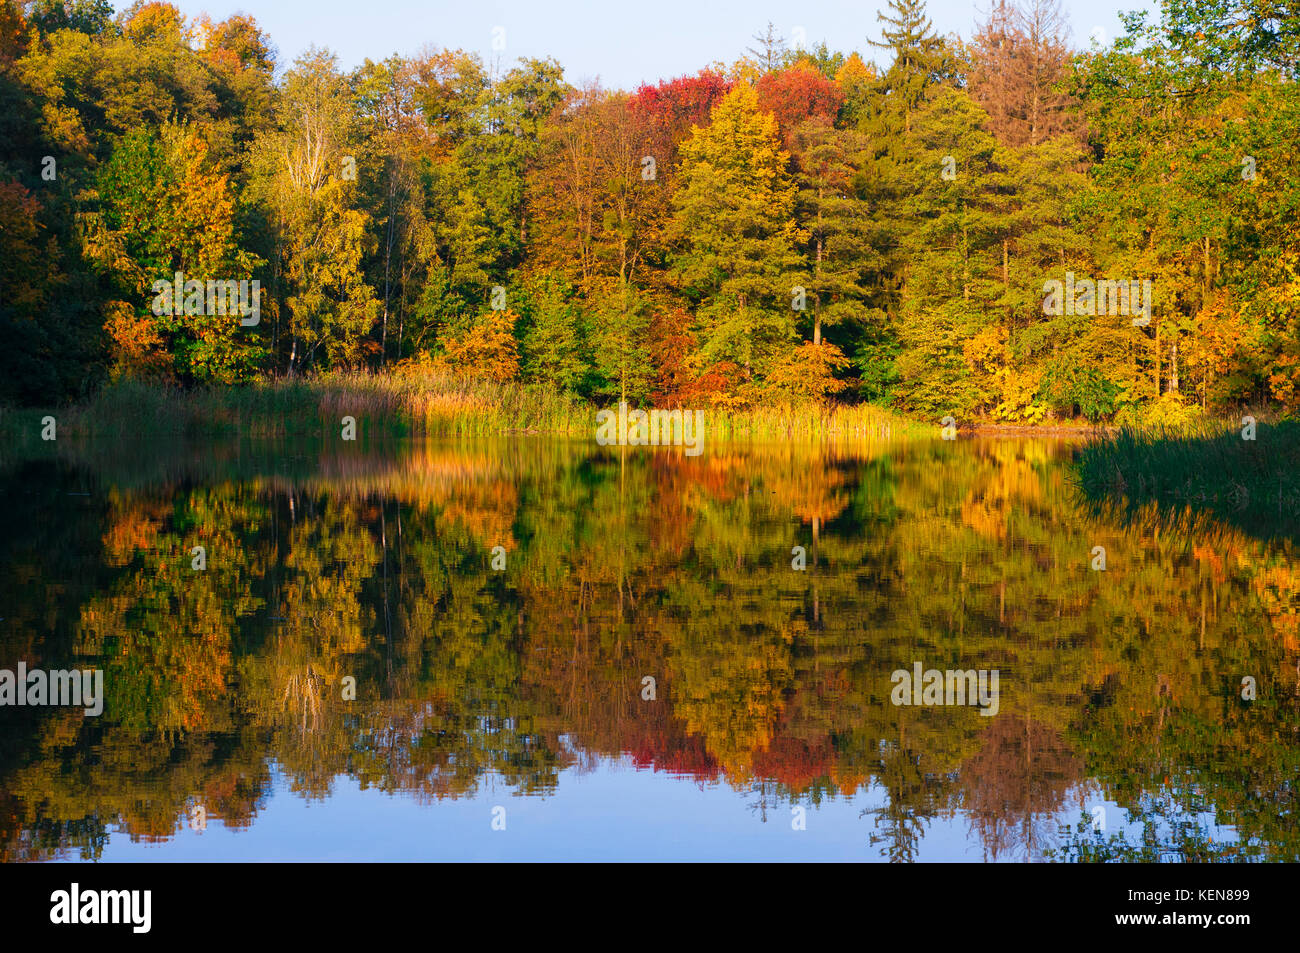 Small lake and fall color trees reflection - Stock Image